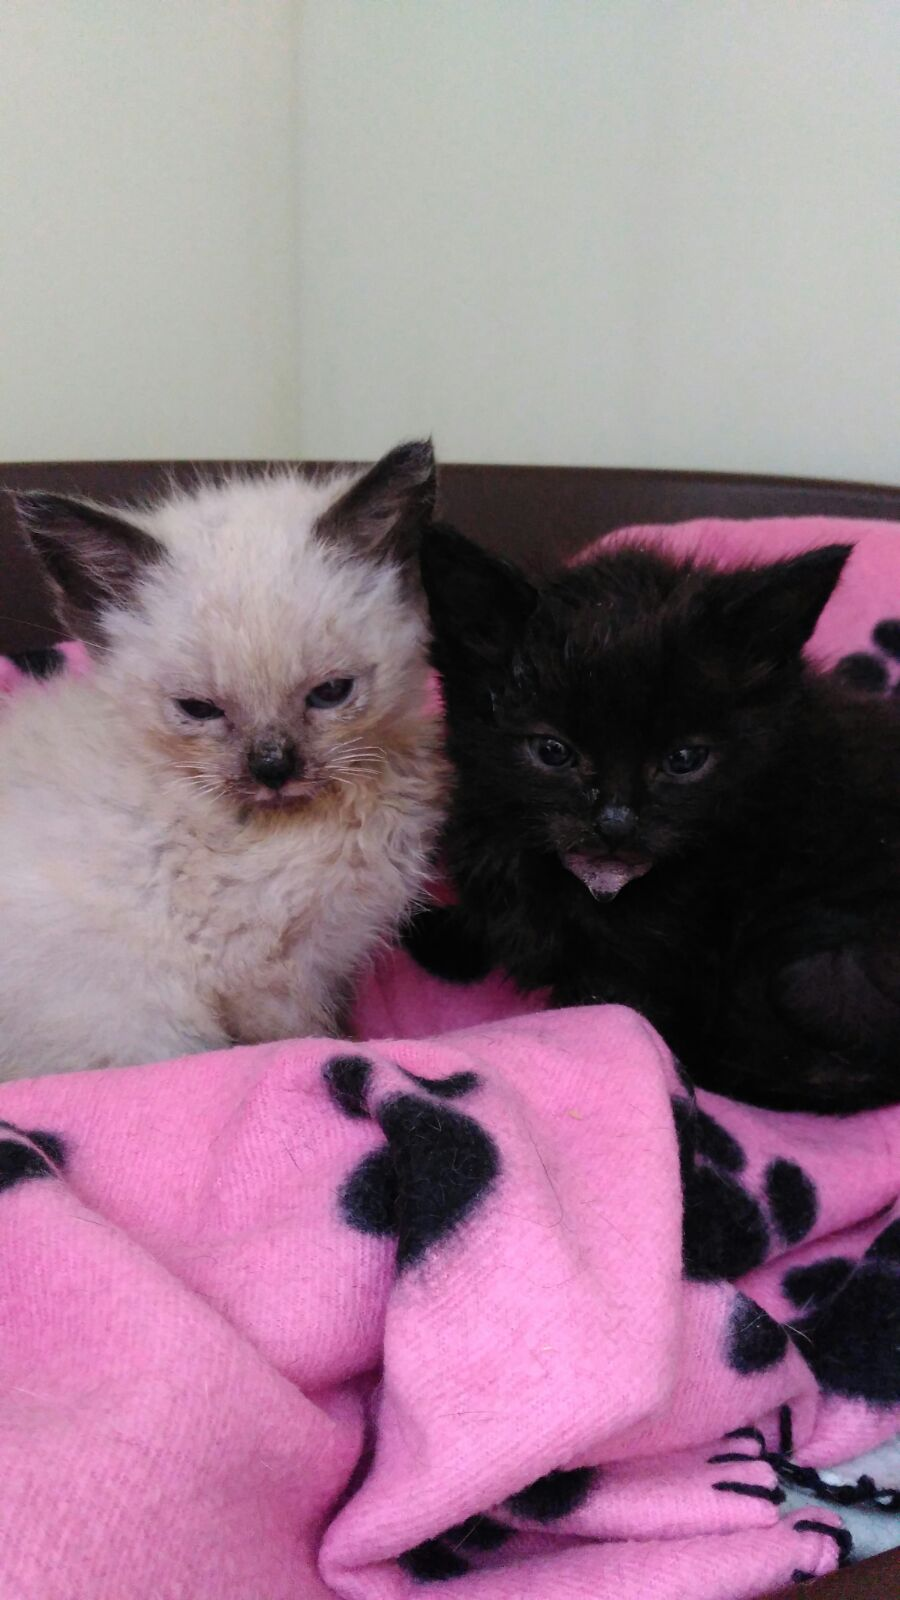 We would like to take this opportunity to update our supporters and followers about the situation regarding our sick kittens.  We have recently taken the decision to quarantine the sanctuary cattery due to a virus that has unfortunately taken the lives of 5 of the kittens we had recently rescued. ...